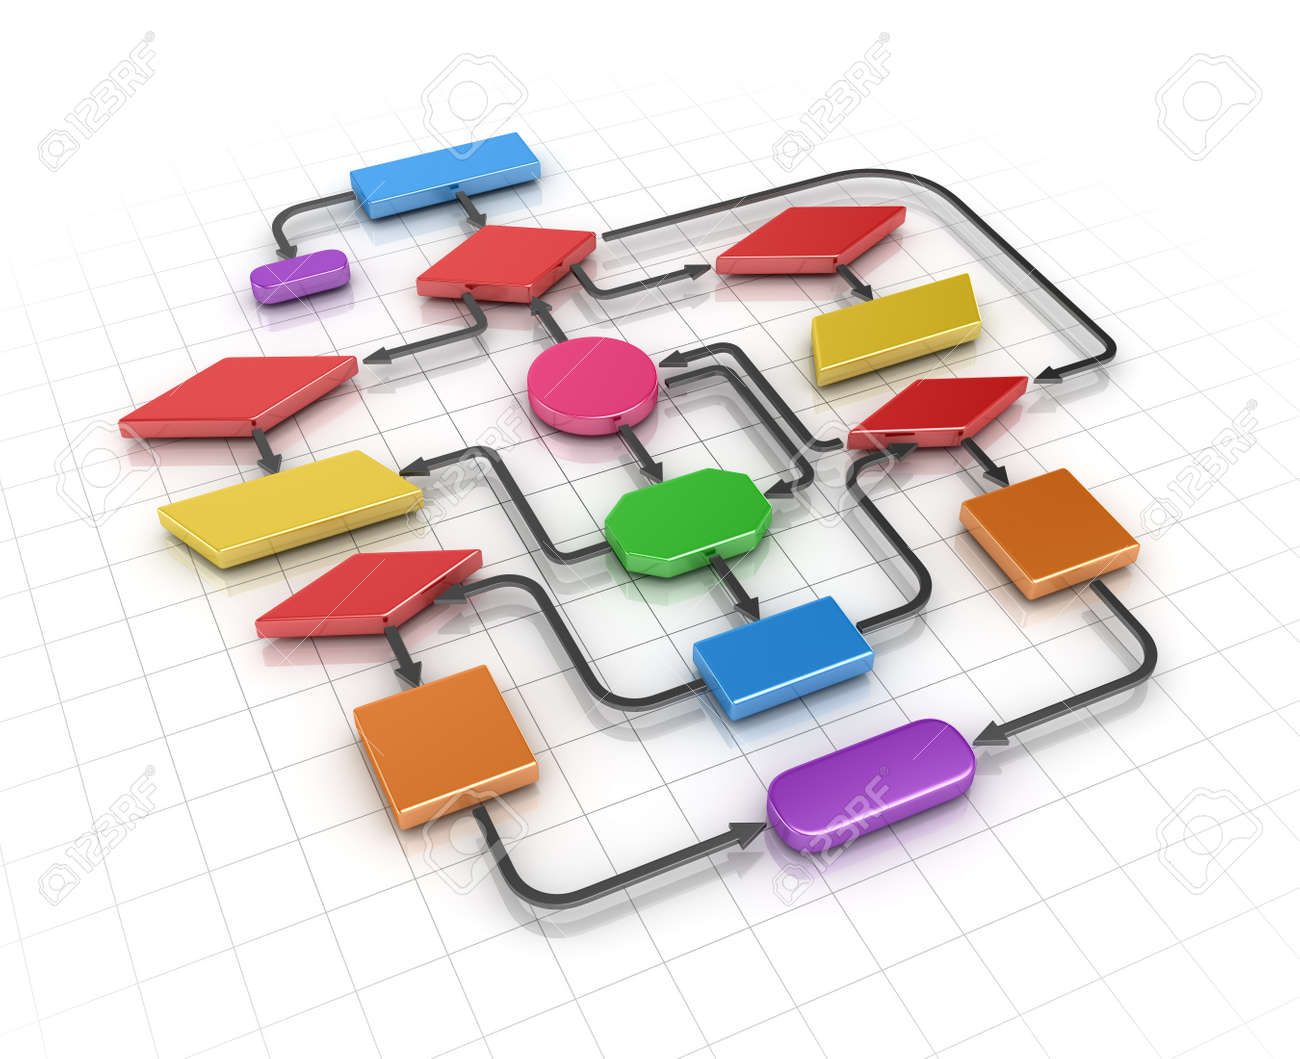 Flow chart diagram this is a 3d rendered computer generated flow chart diagram this is a 3d rendered computer generated image stock photo nvjuhfo Choice Image